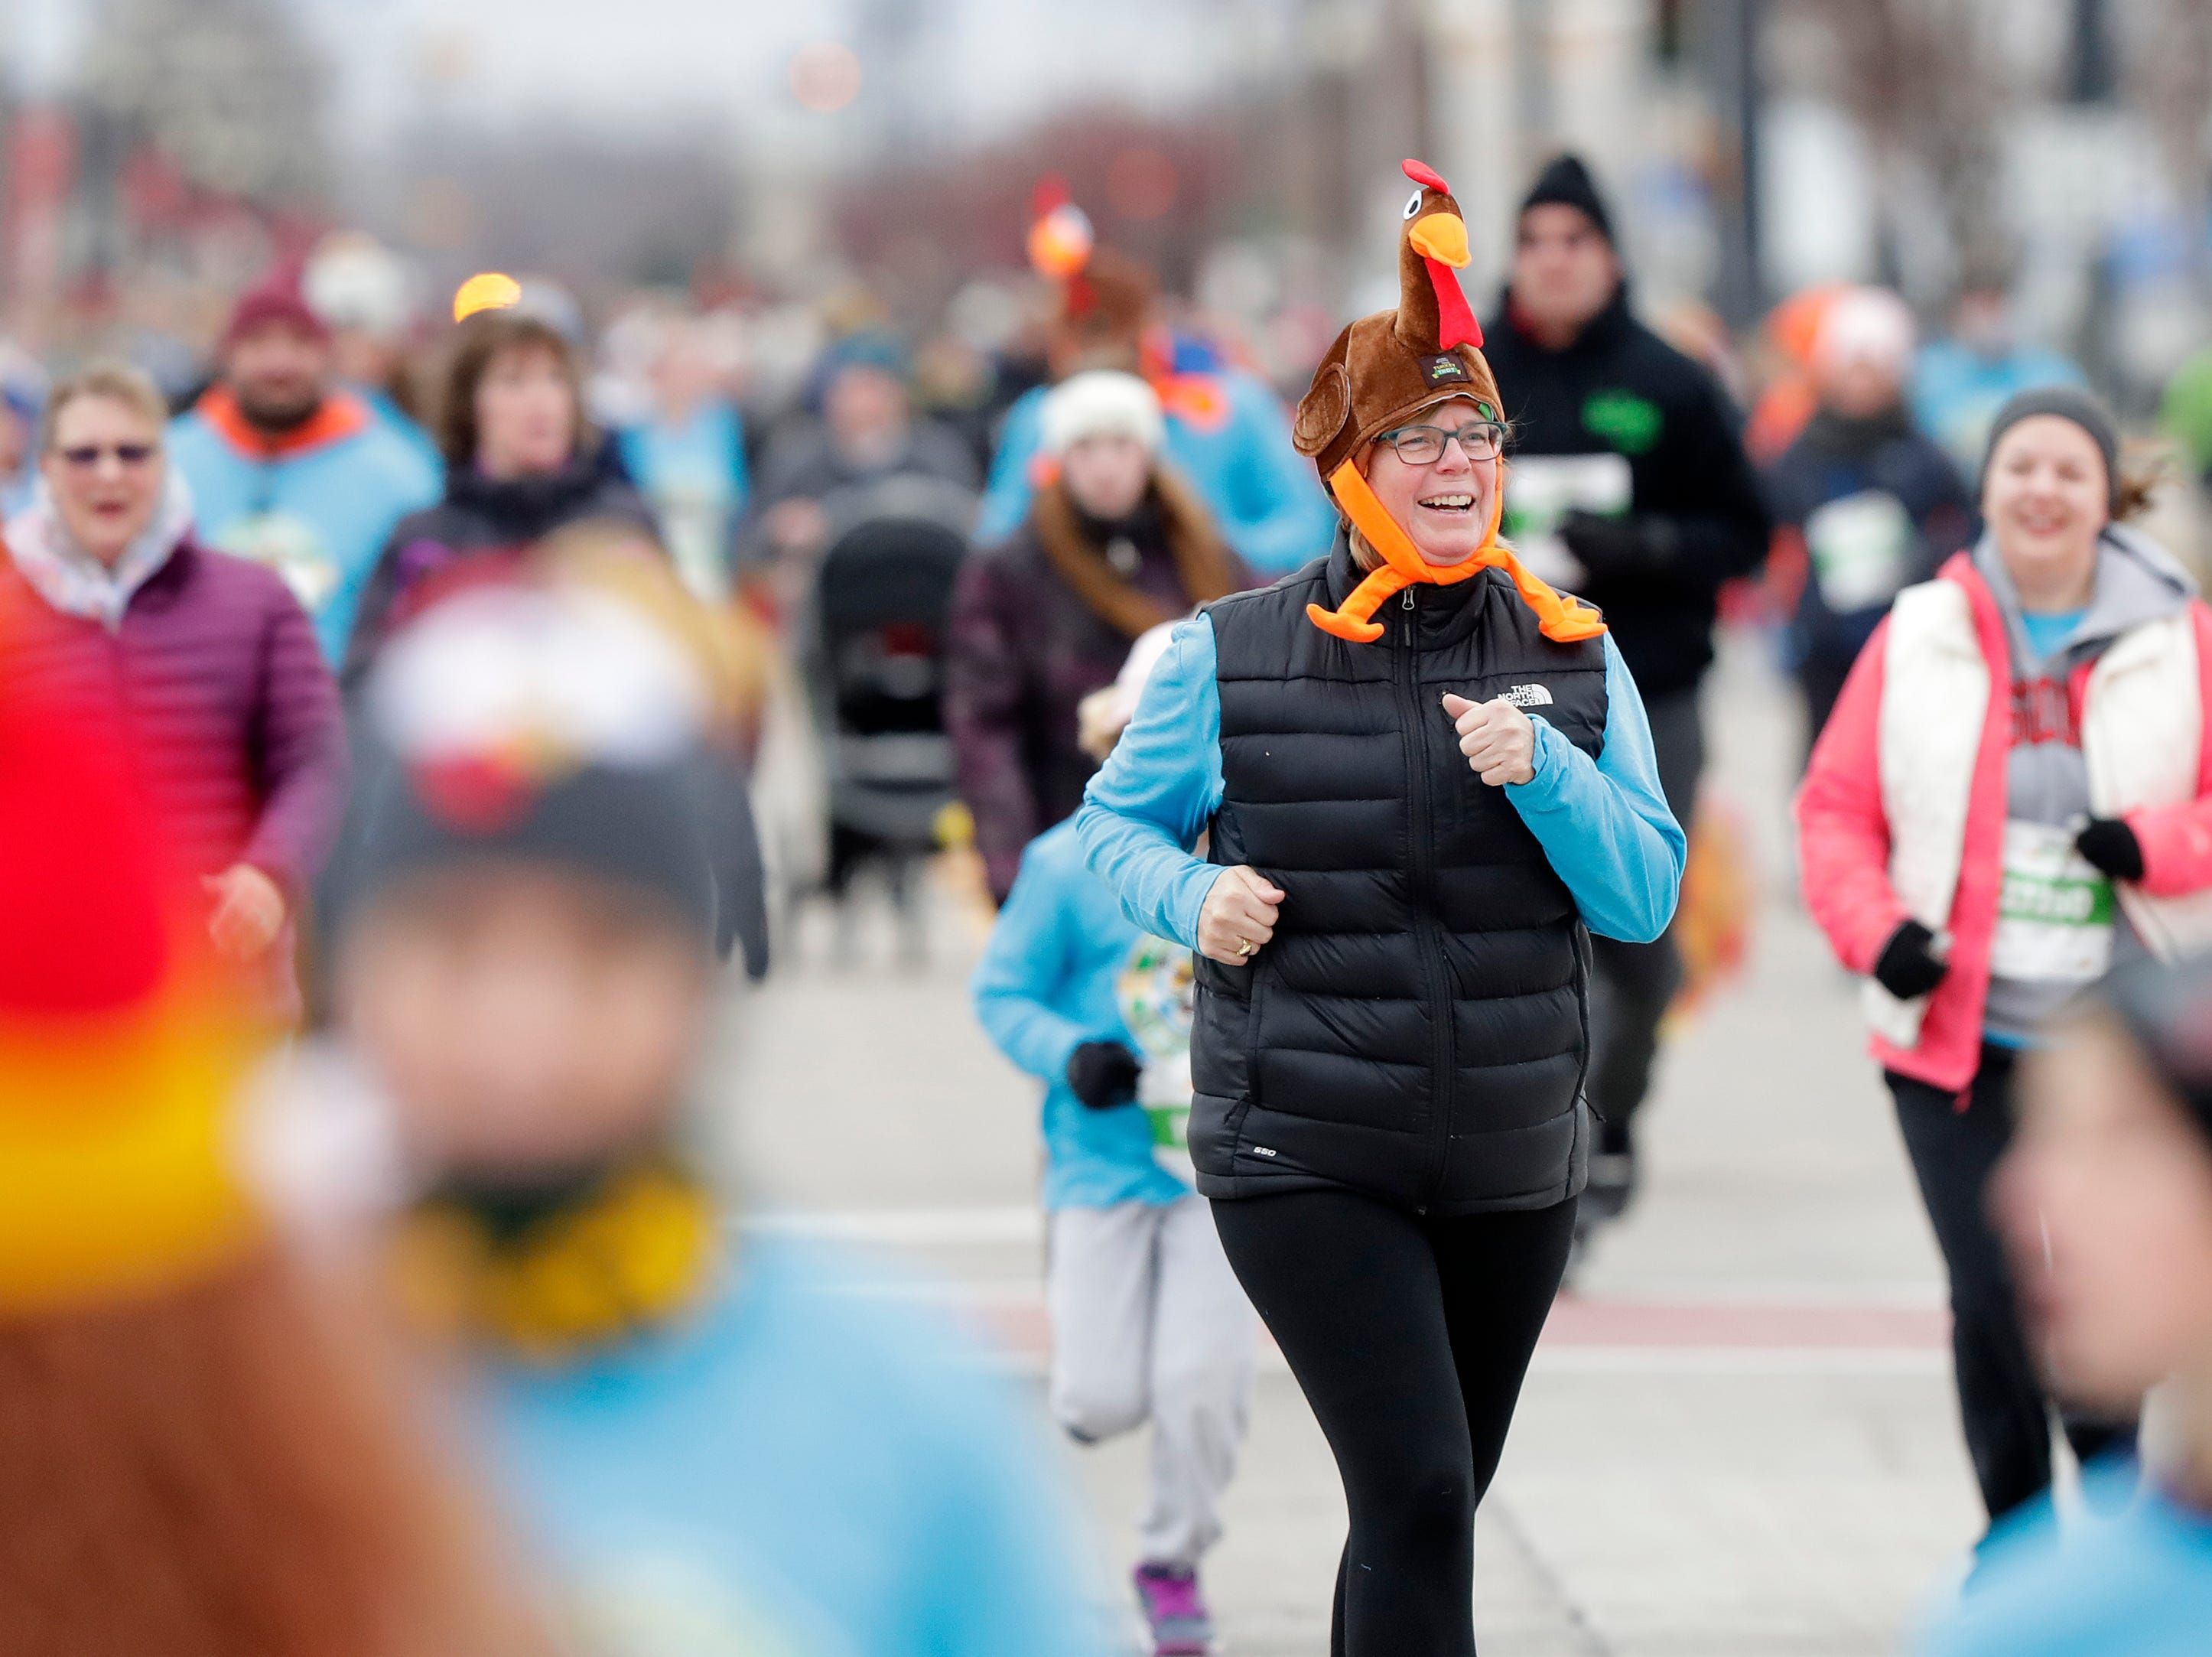 Runners participate in the annual Festival Foods Turkey Trot on Thursday, November 22, 2018 in Ashwaubenon, Wis.